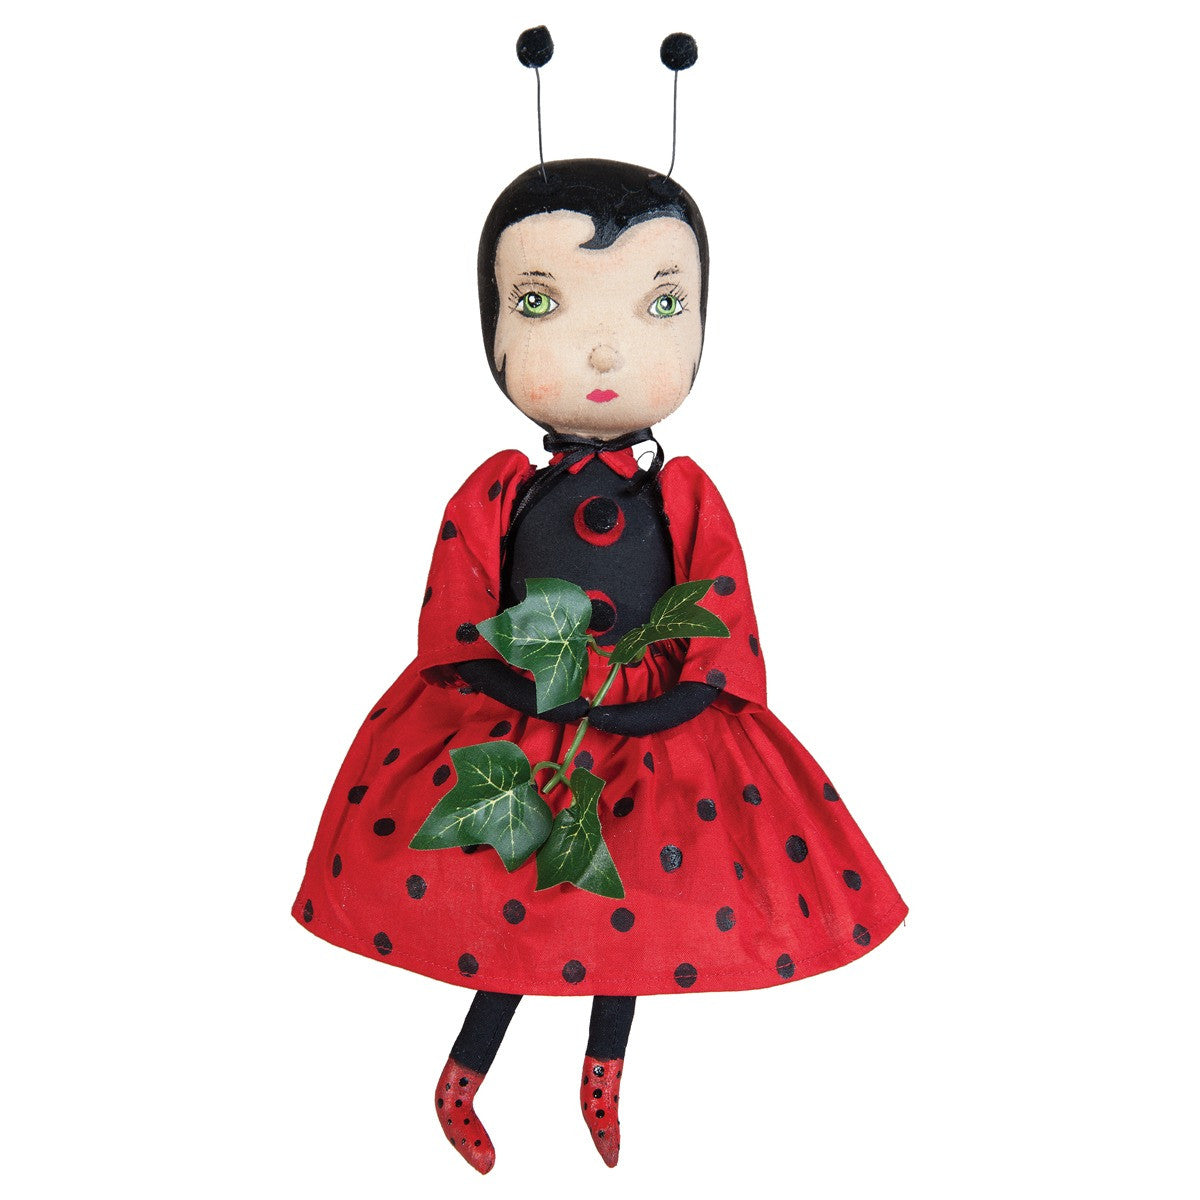 Cherry Ladybug Doll by Joe Spencer